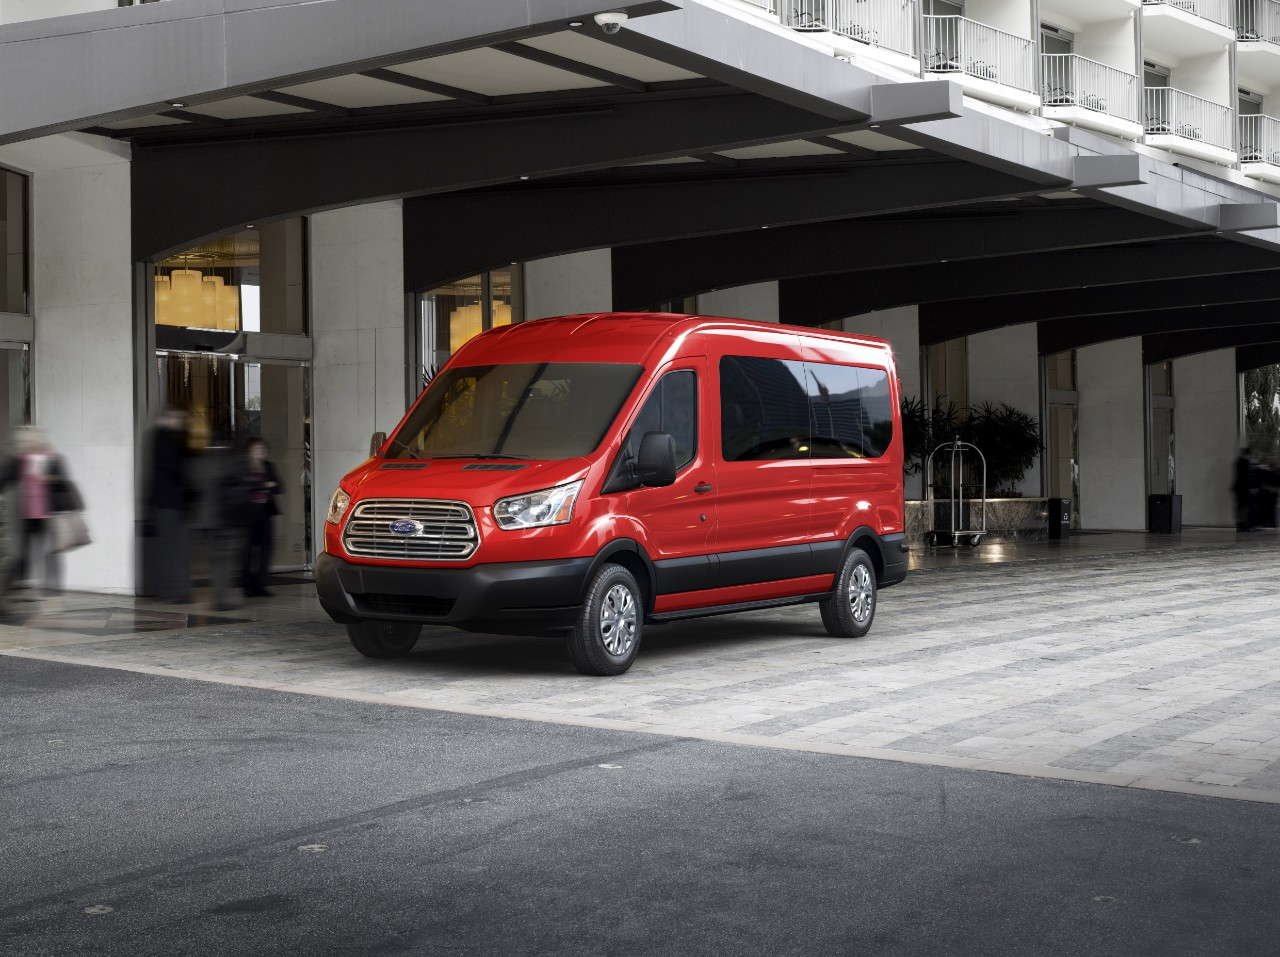 new and used ford transit prices photos reviews specs. Black Bedroom Furniture Sets. Home Design Ideas